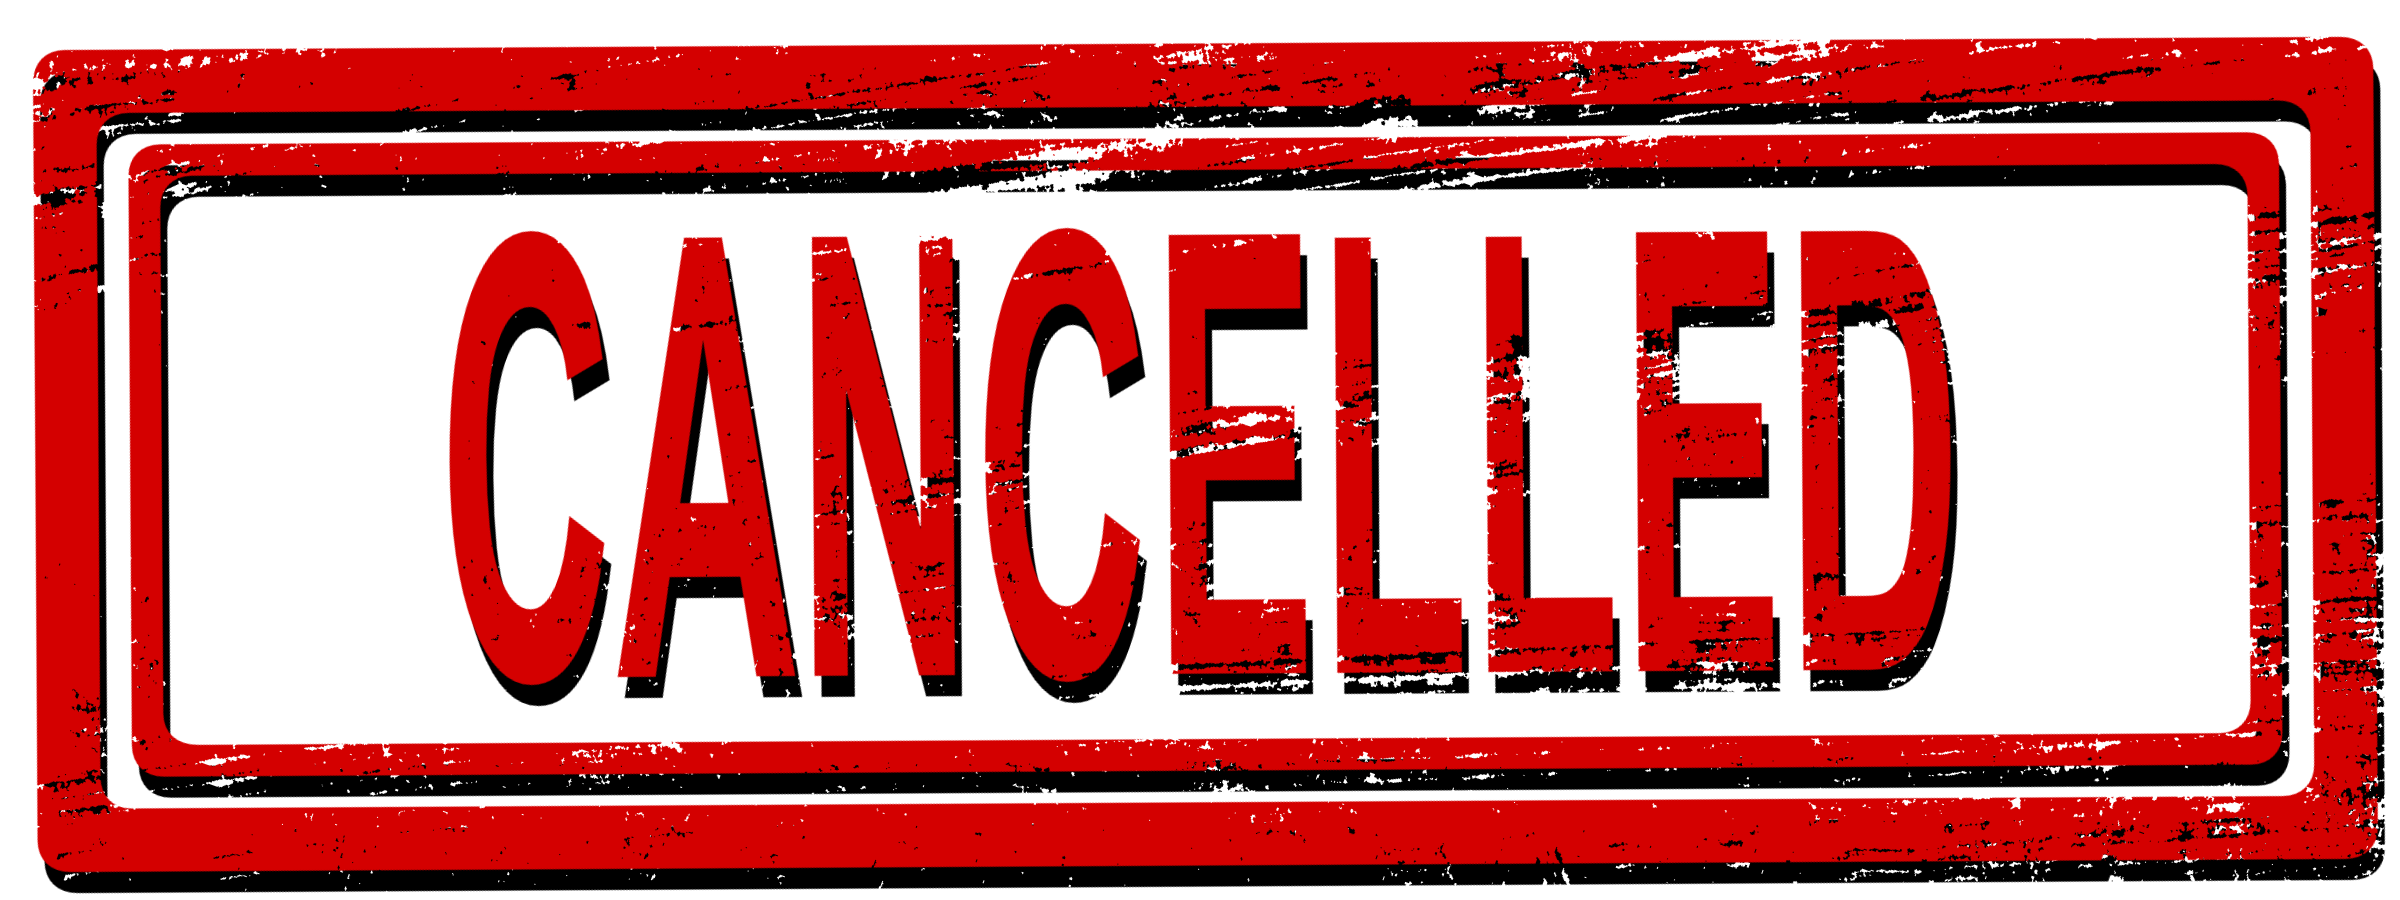 cancelled written in red with a rectangular box around it